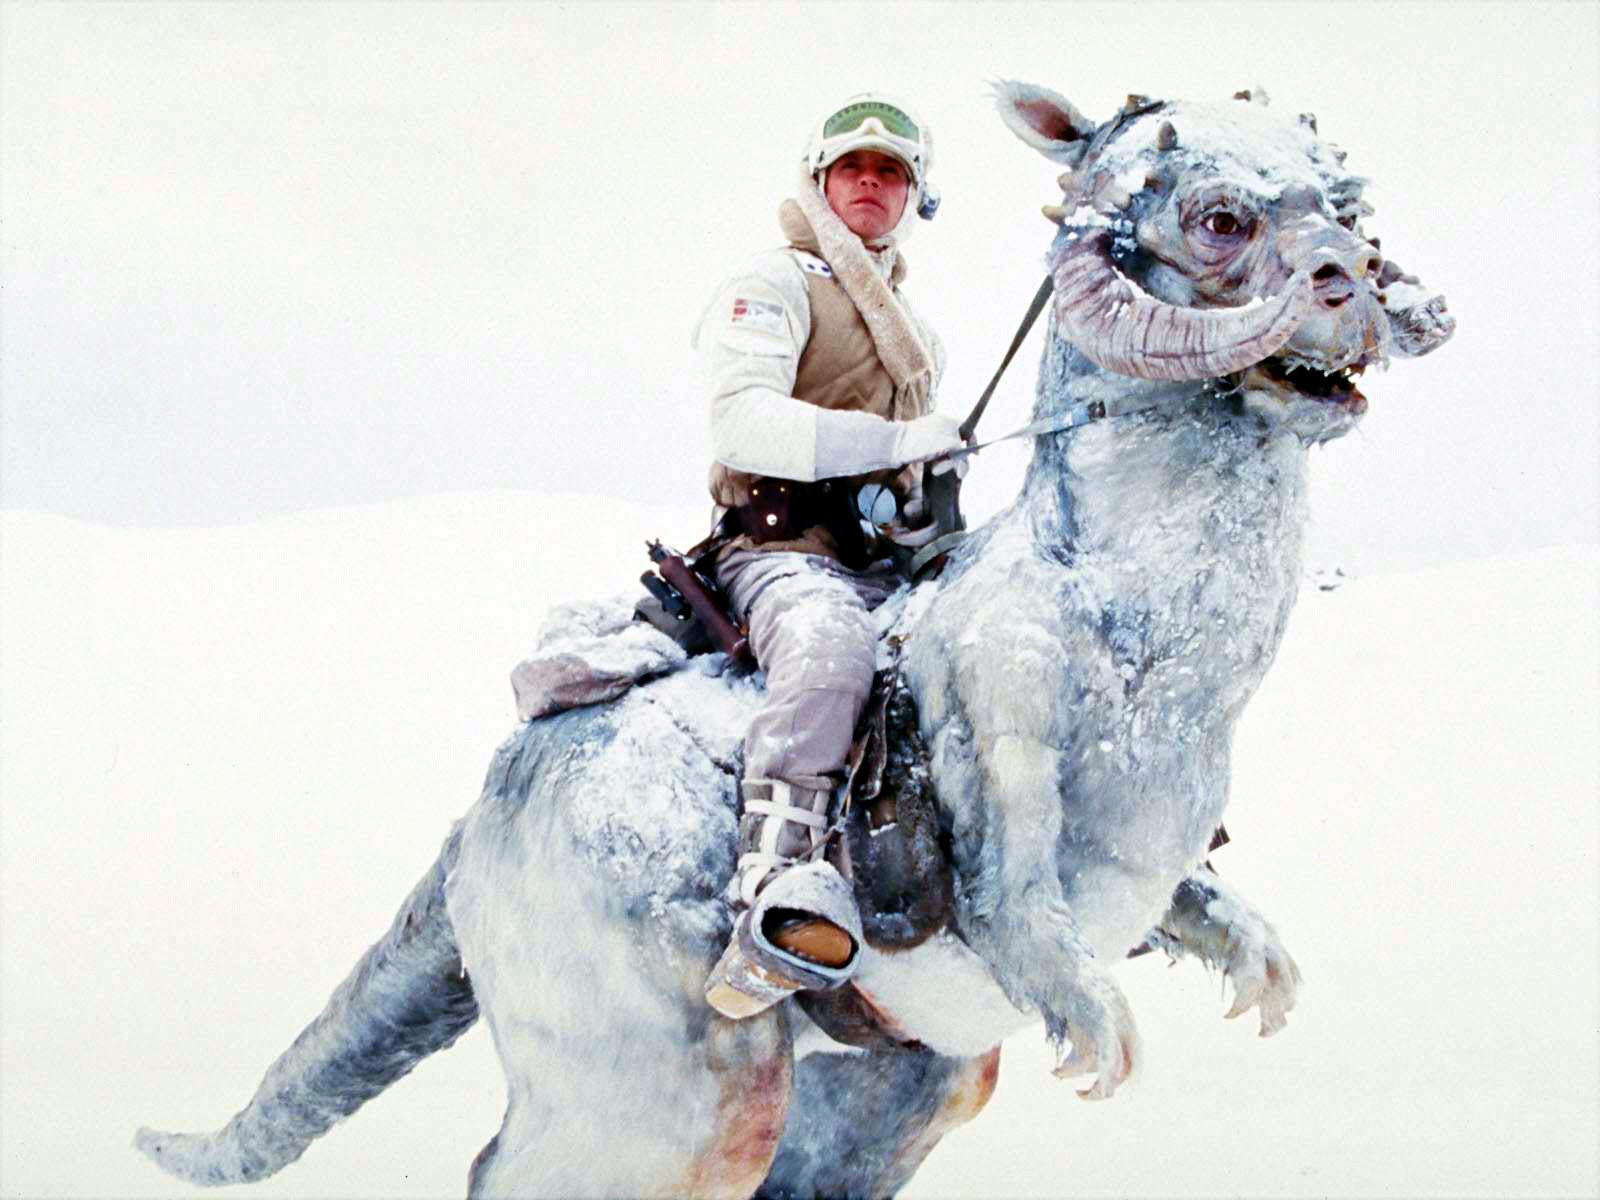 Luke Skywalker riding his tauntaun on Hoth, from Star Wars.